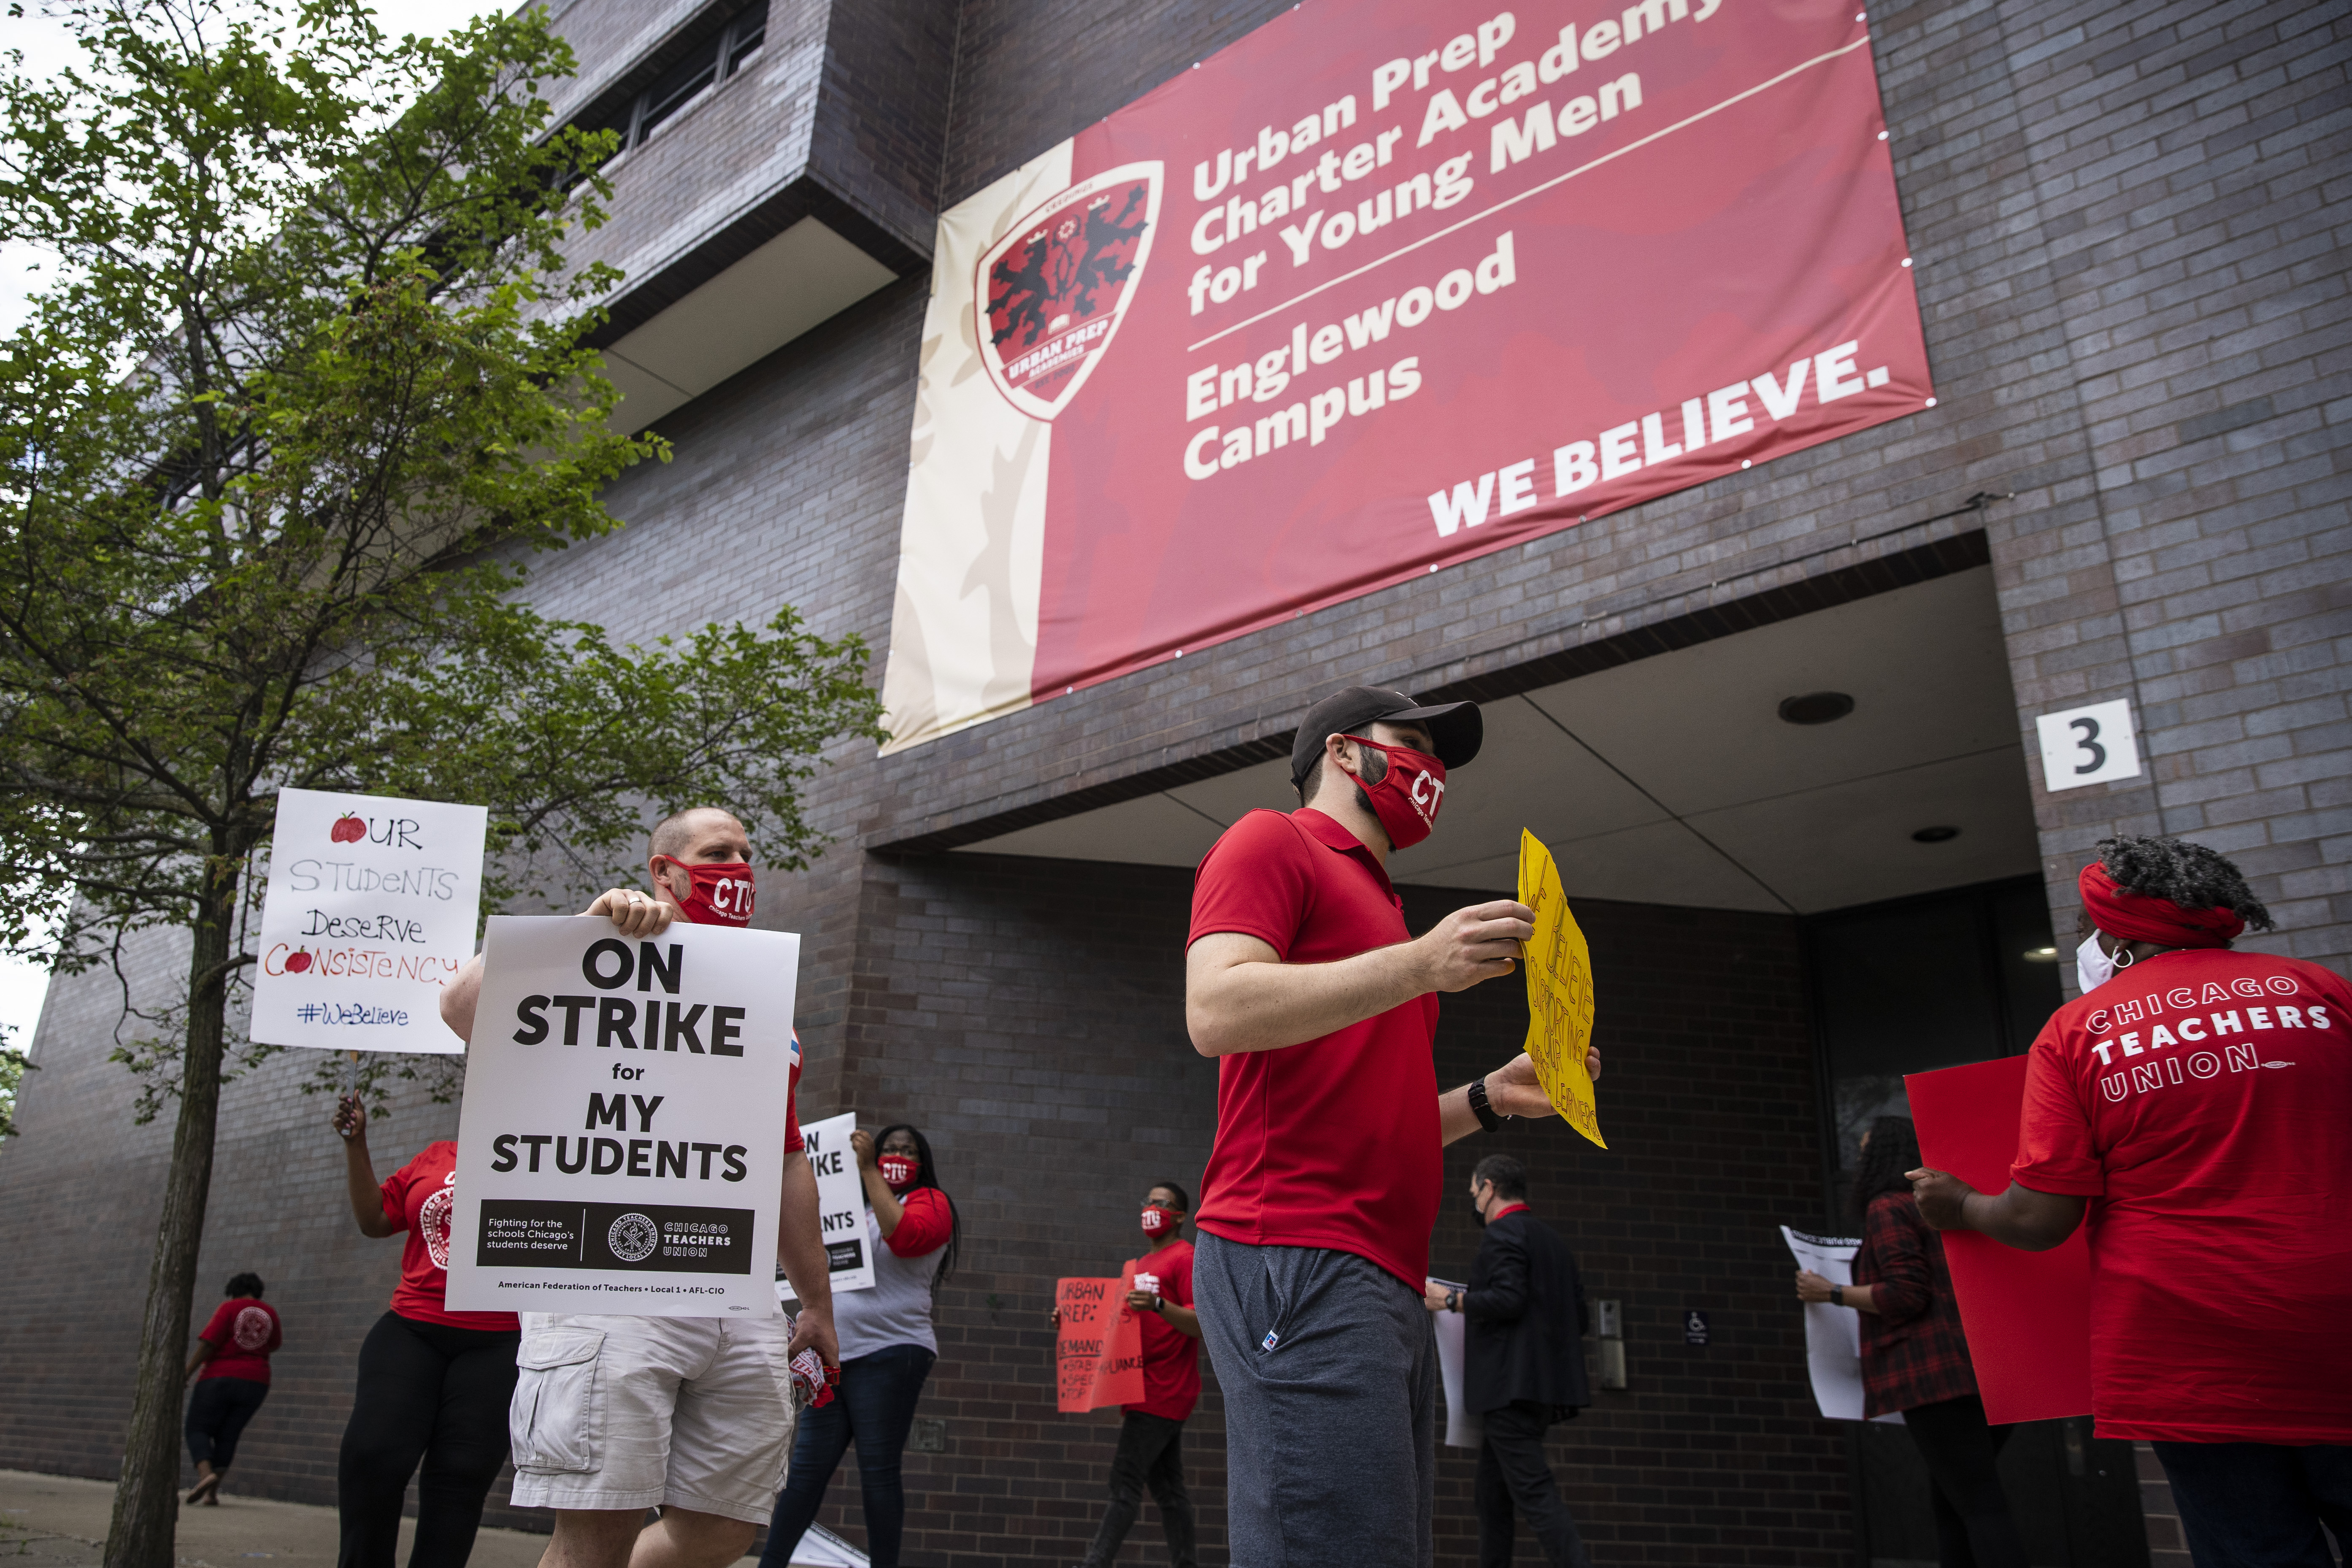 Chicago Teachers Union members and their supporters walk the picket line outside Urban Prep Charter Academy For Young Men - Englewood Campus at 6201 S. Stewart Ave., Tuesday morning, June 8, 2021.